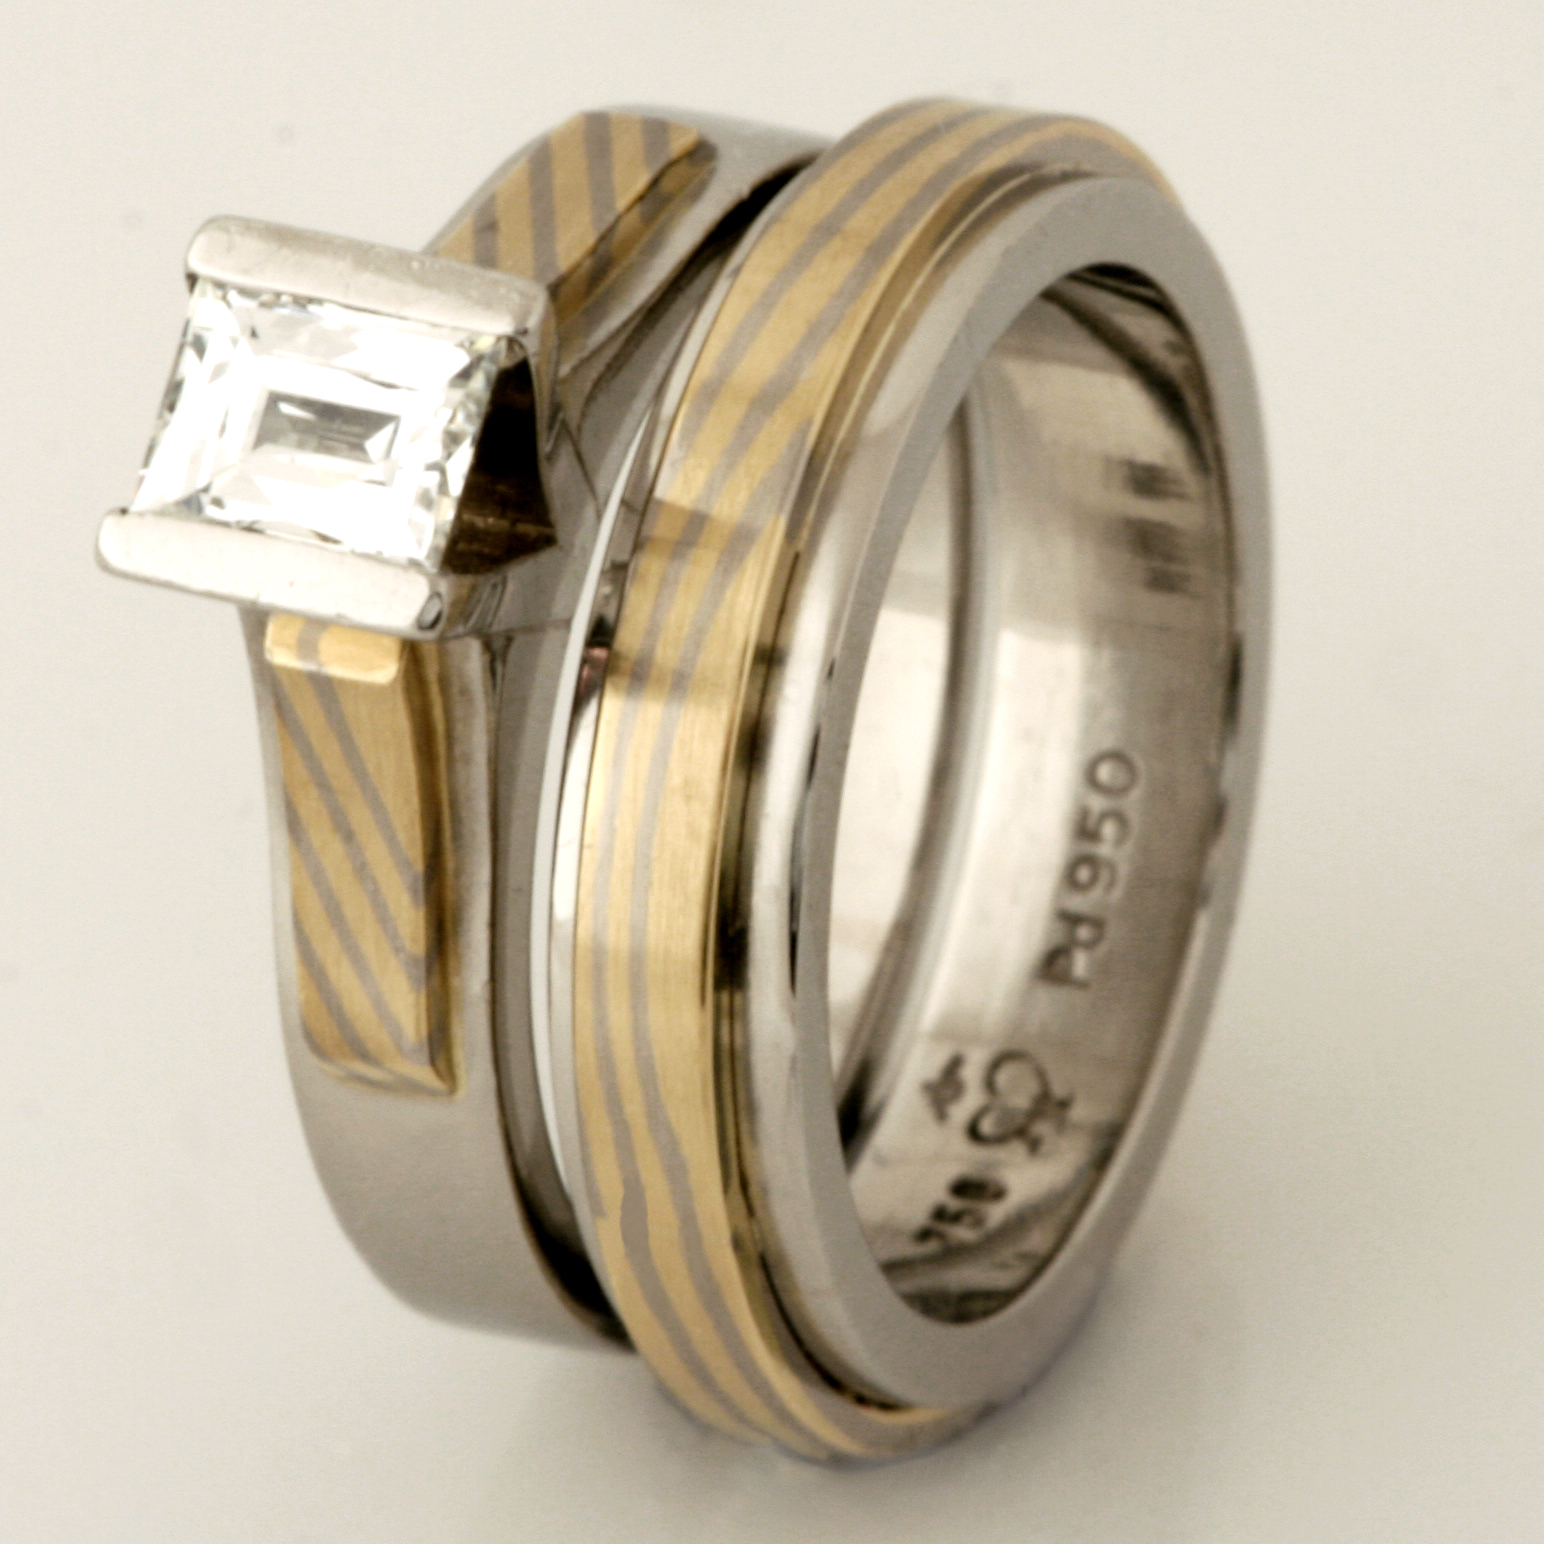 Handmade ladies palladium engagement and wedding ring featuring an 18ct yellow gold and 18ct white gold Mokume Gane band